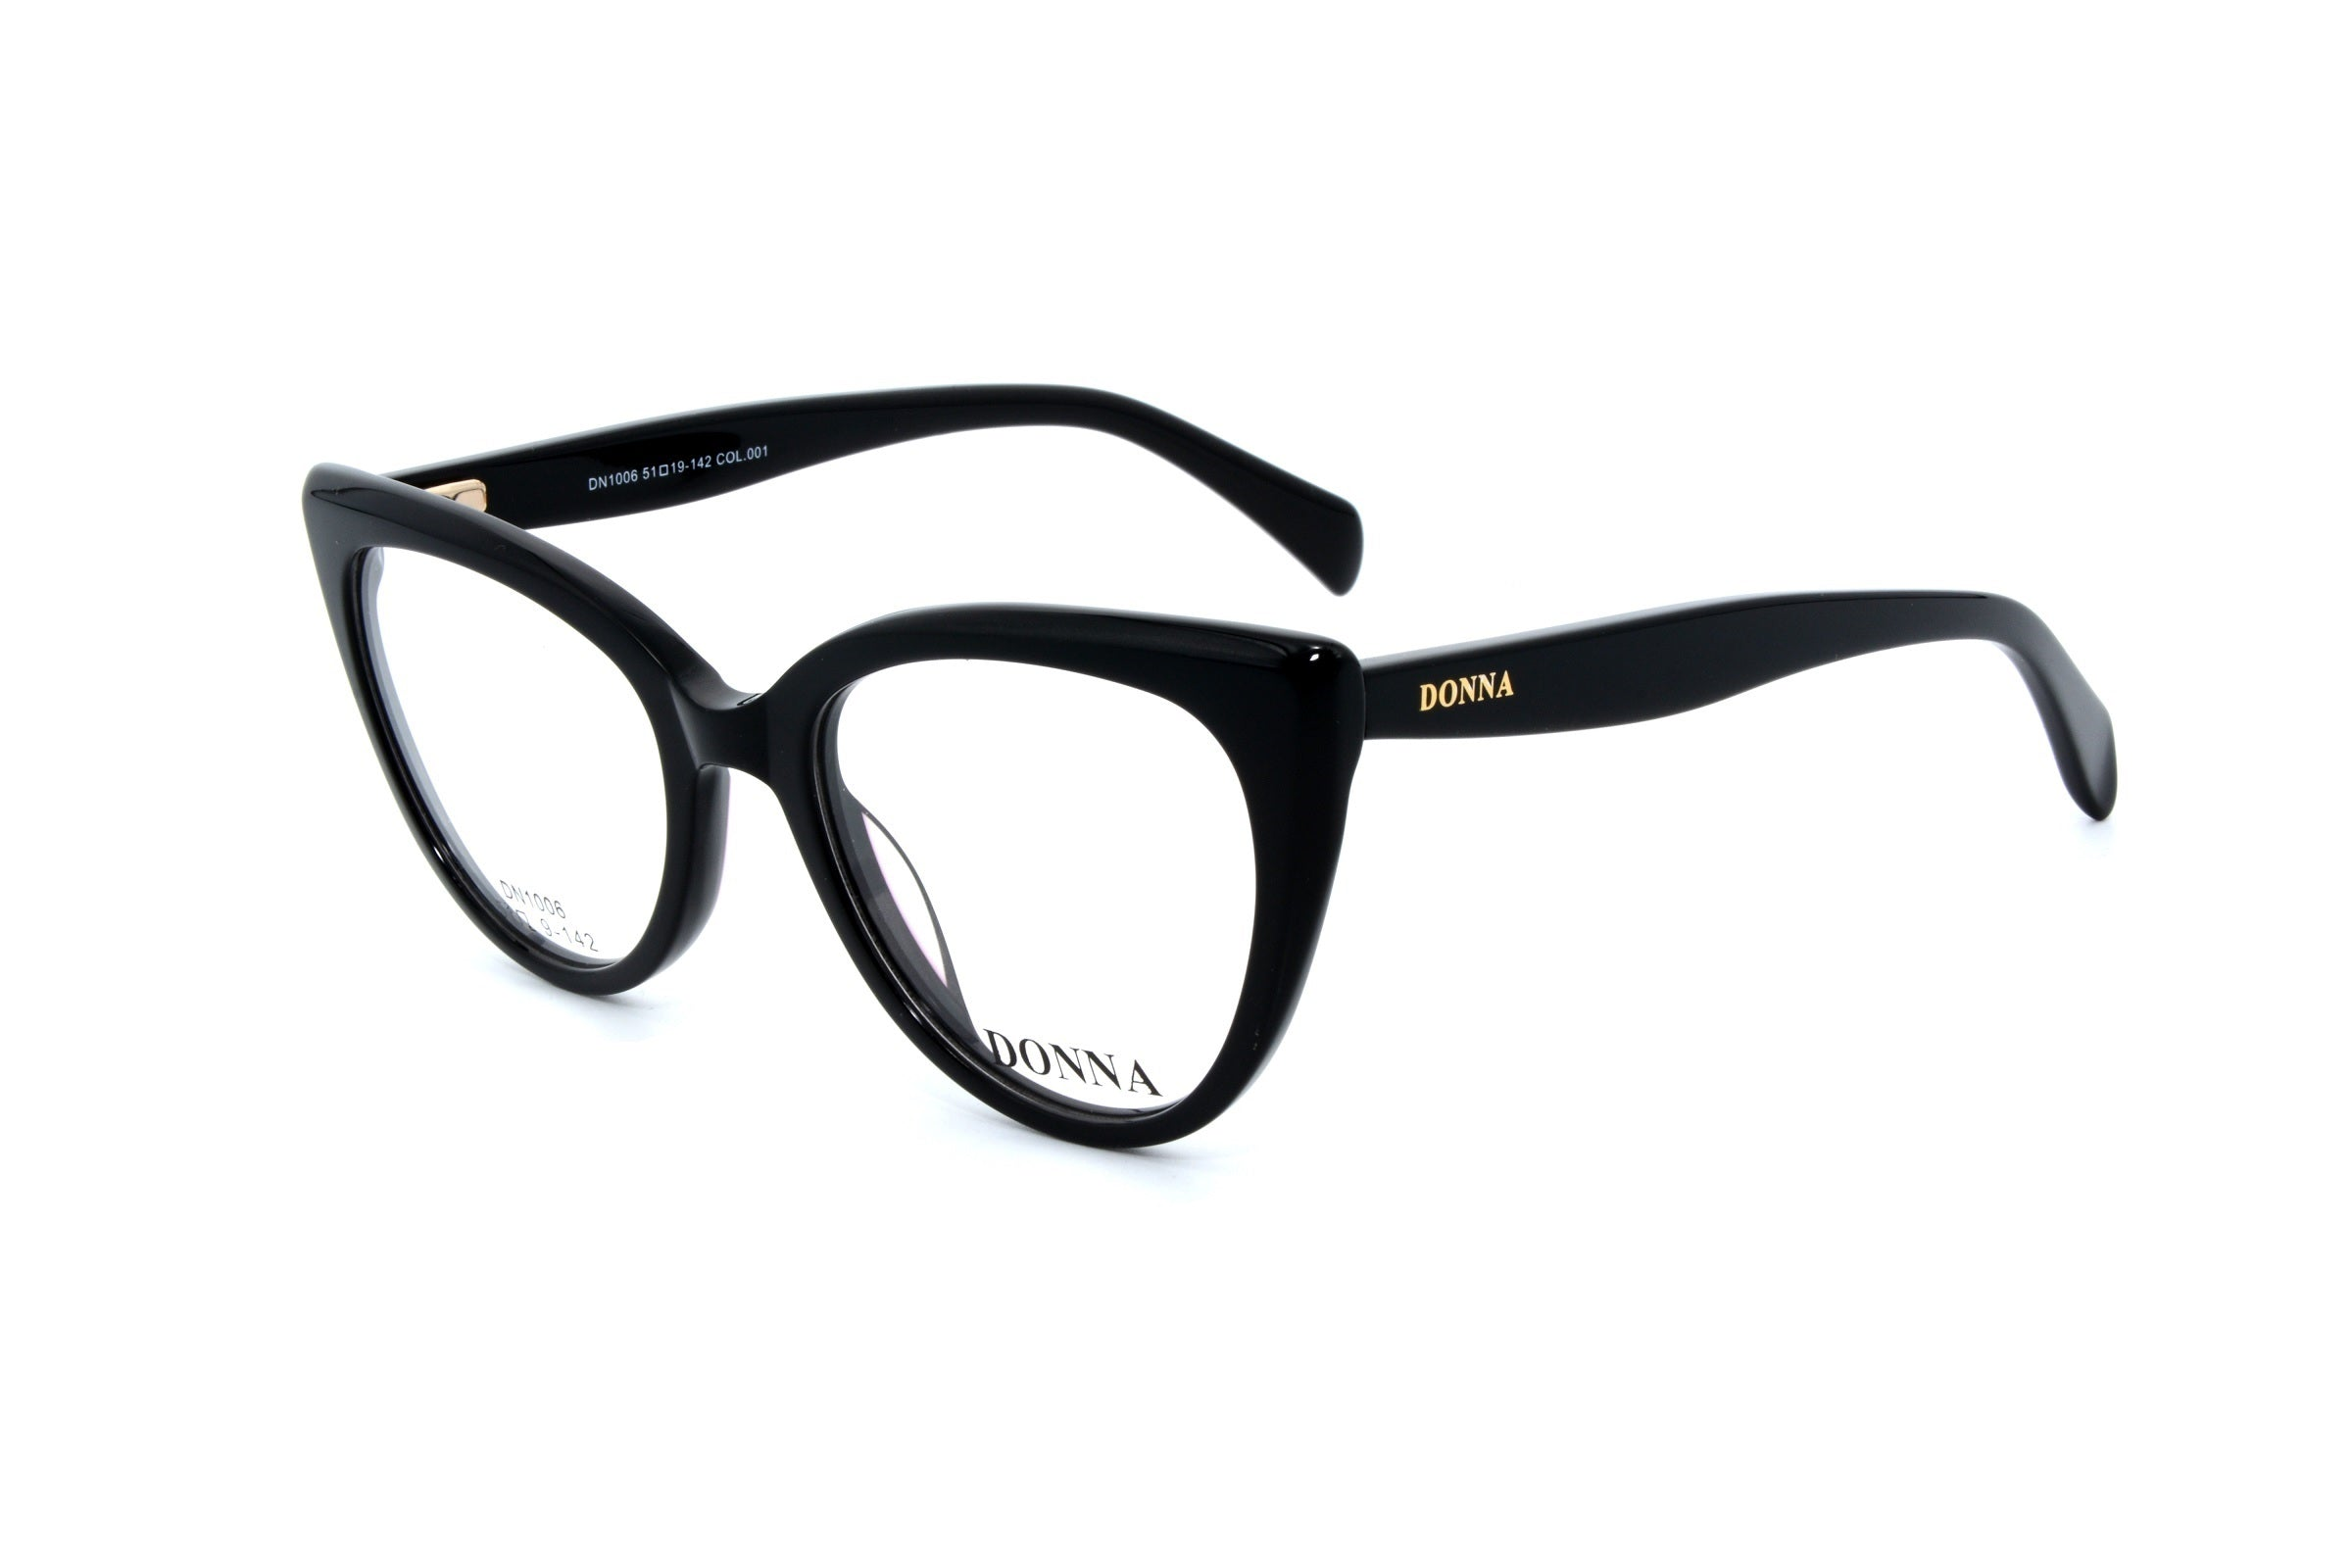 Donna eyewear 1006, C001 - Optics Trading